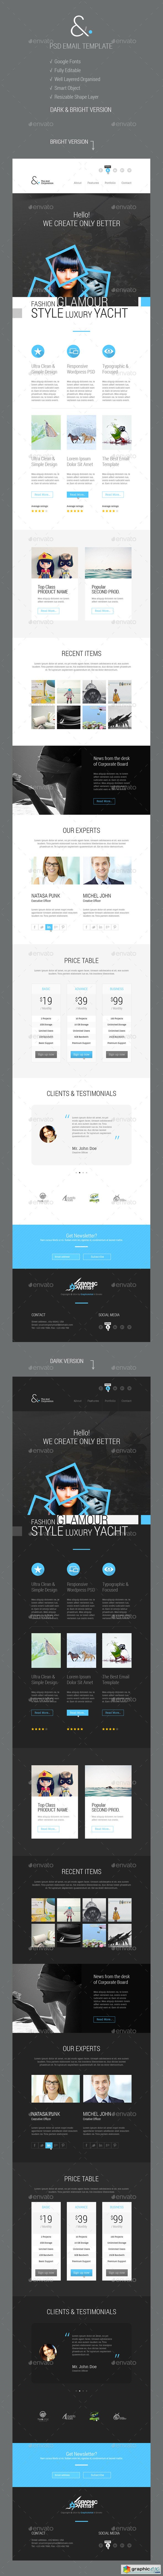 Corporate Email Template » Free Download Vector Stock Image ...